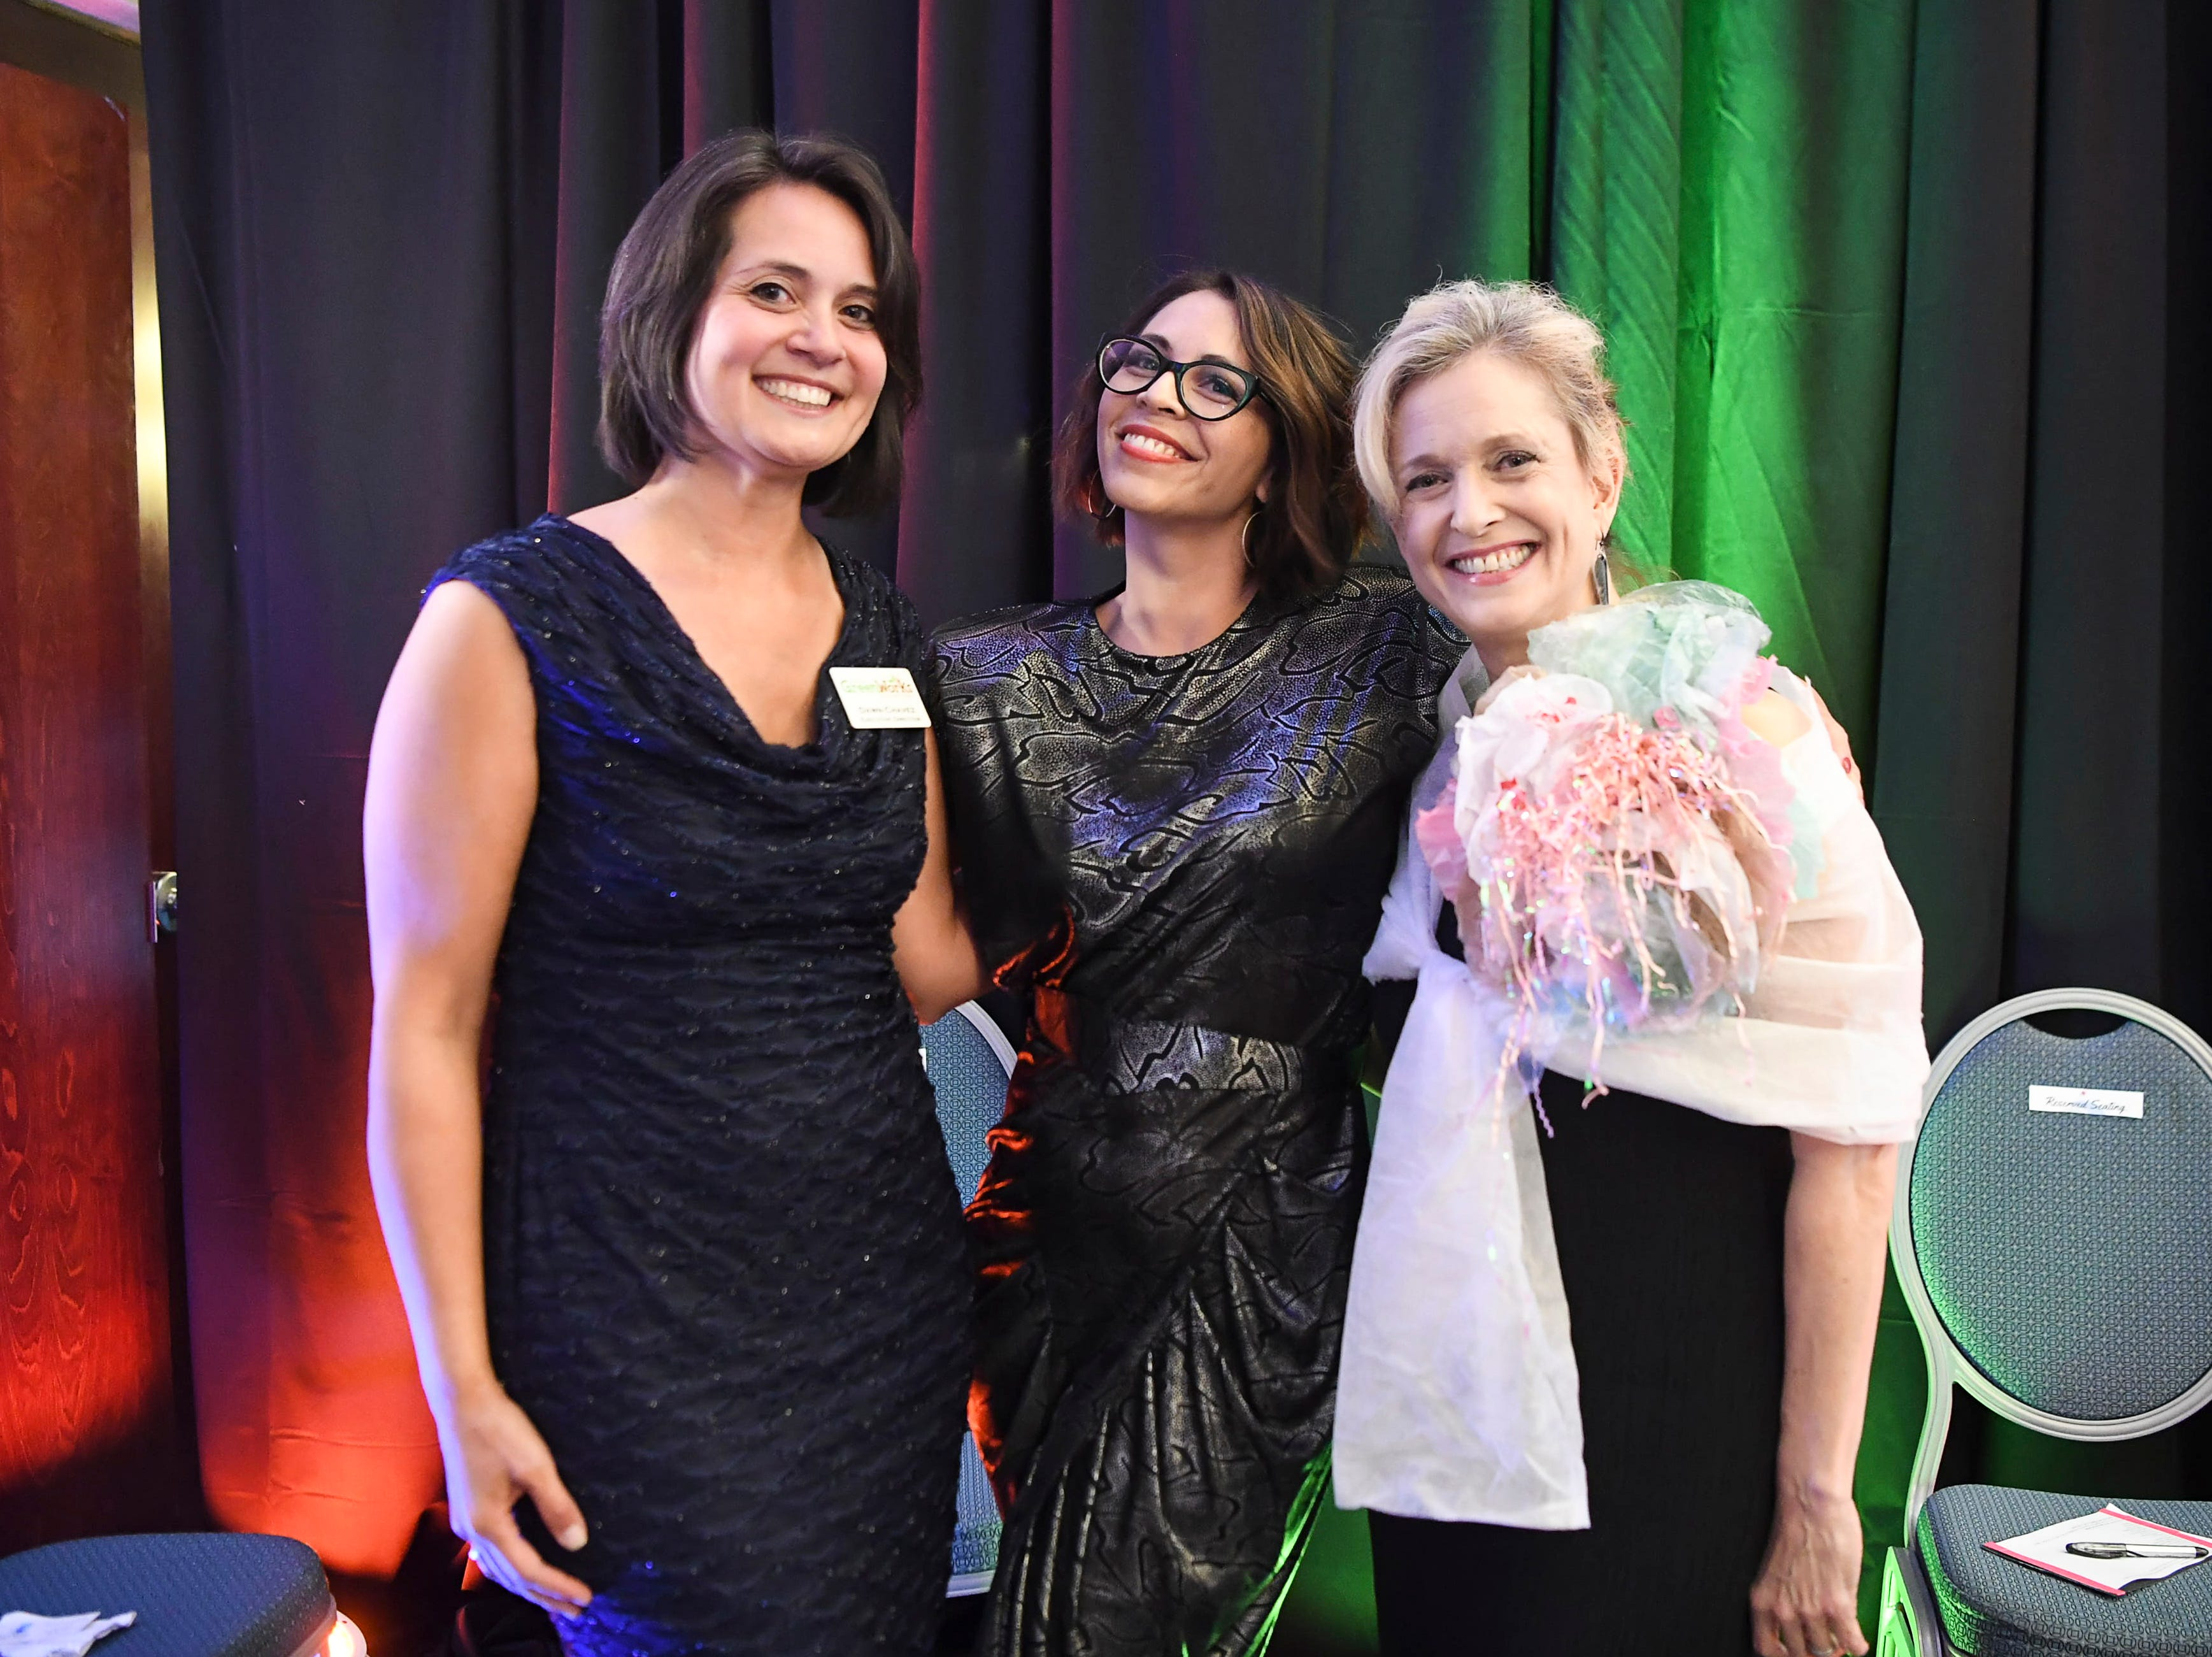 Asheville GreenWorks hosted a recycled fashion show and presented environmental excellence awards at the Doubletree in Asheville April 27, 2019.